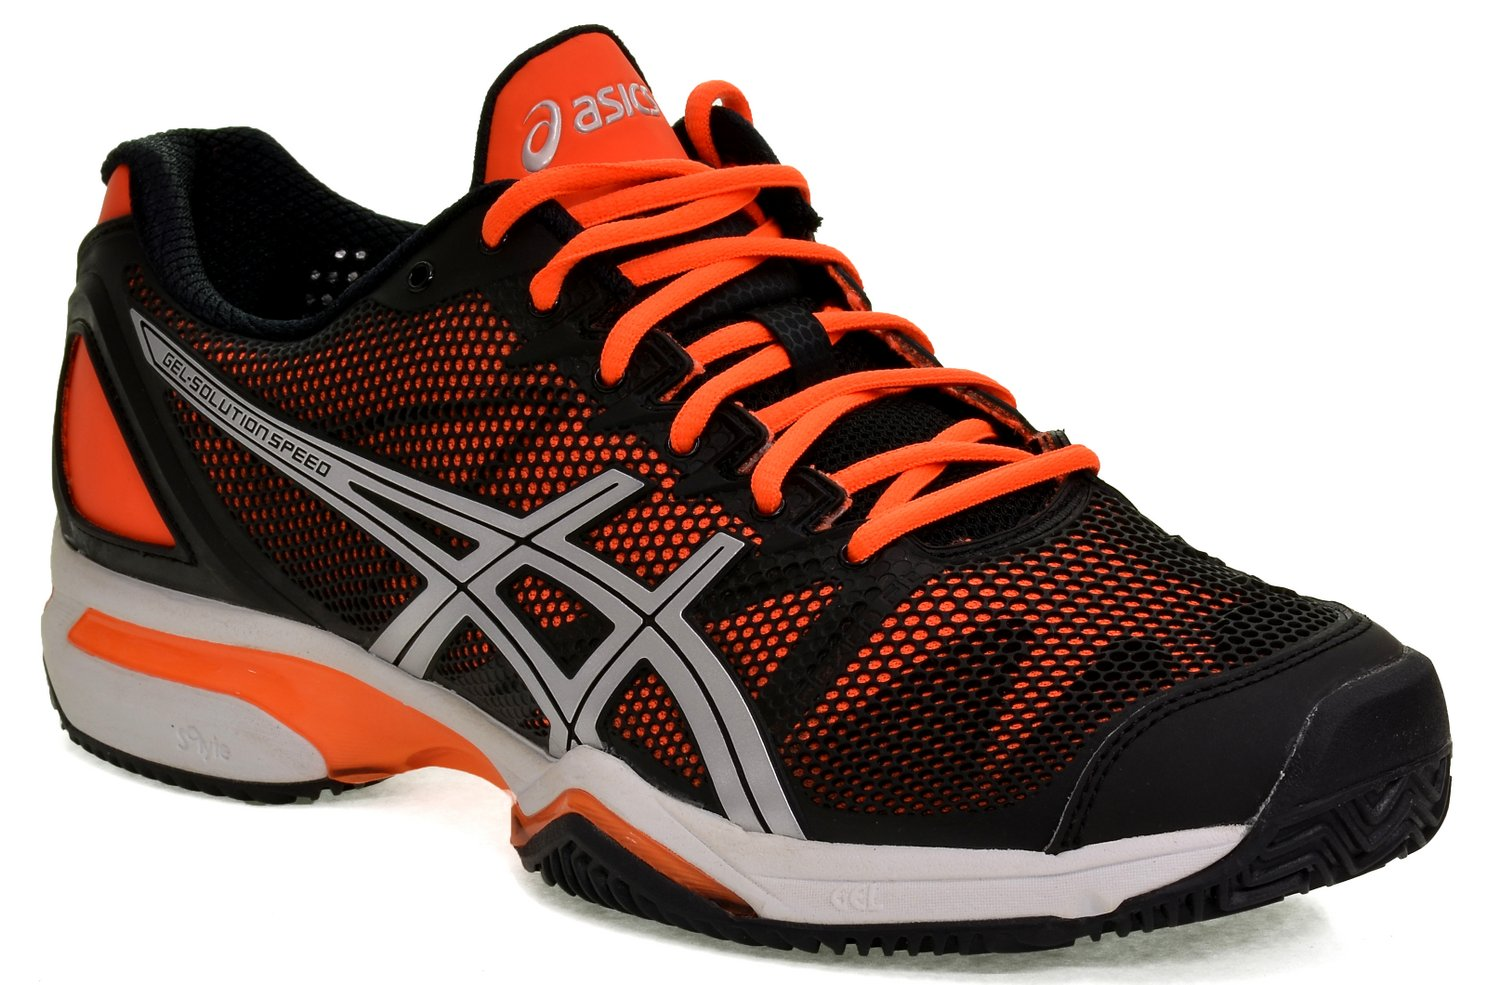 asics mens clay tennis shoes